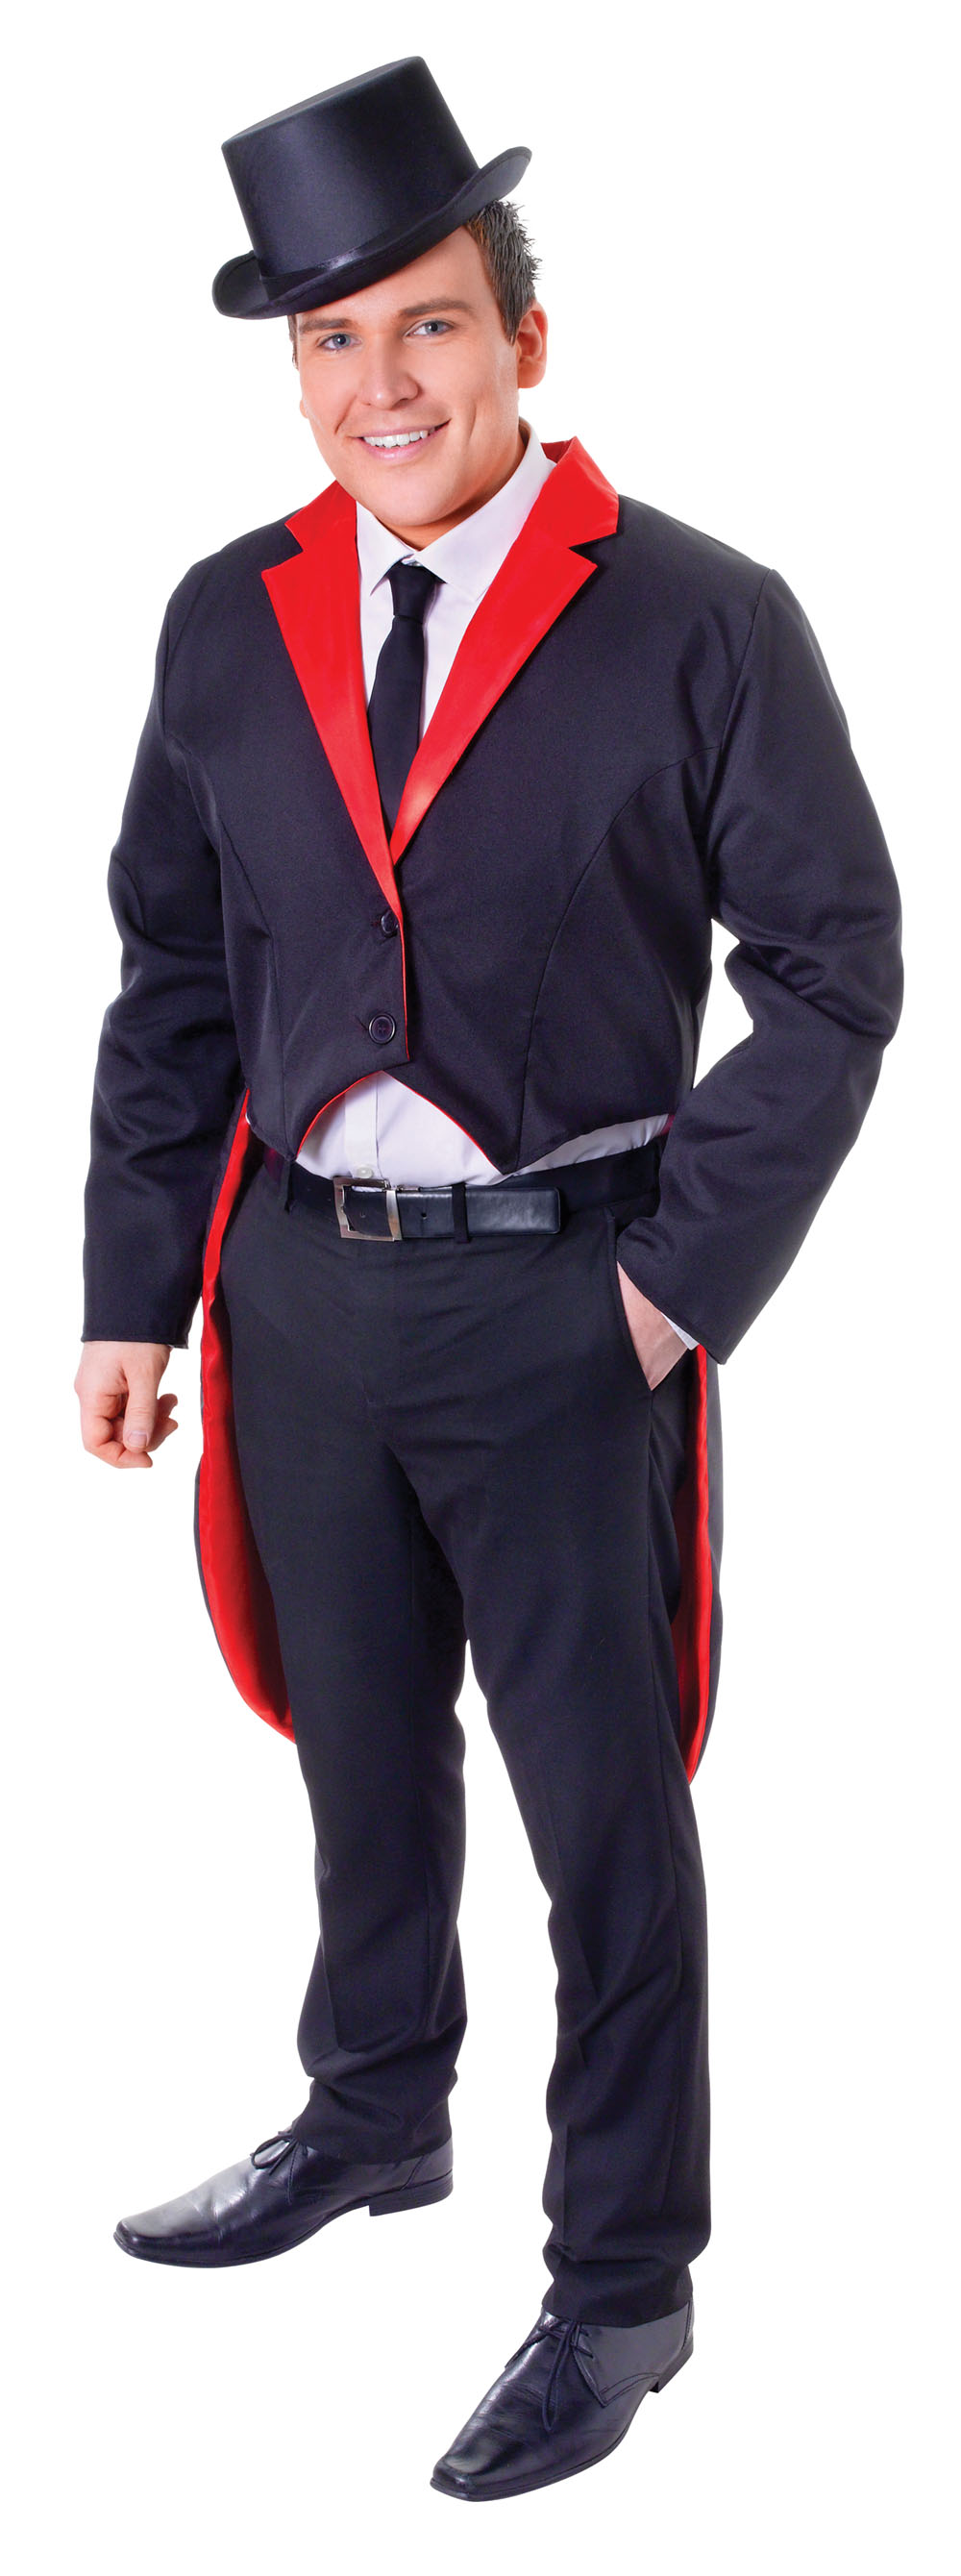 Mens Black & Red Tailcoat Smart Ringleader Fancy Dress Costume Jacket Outfit New